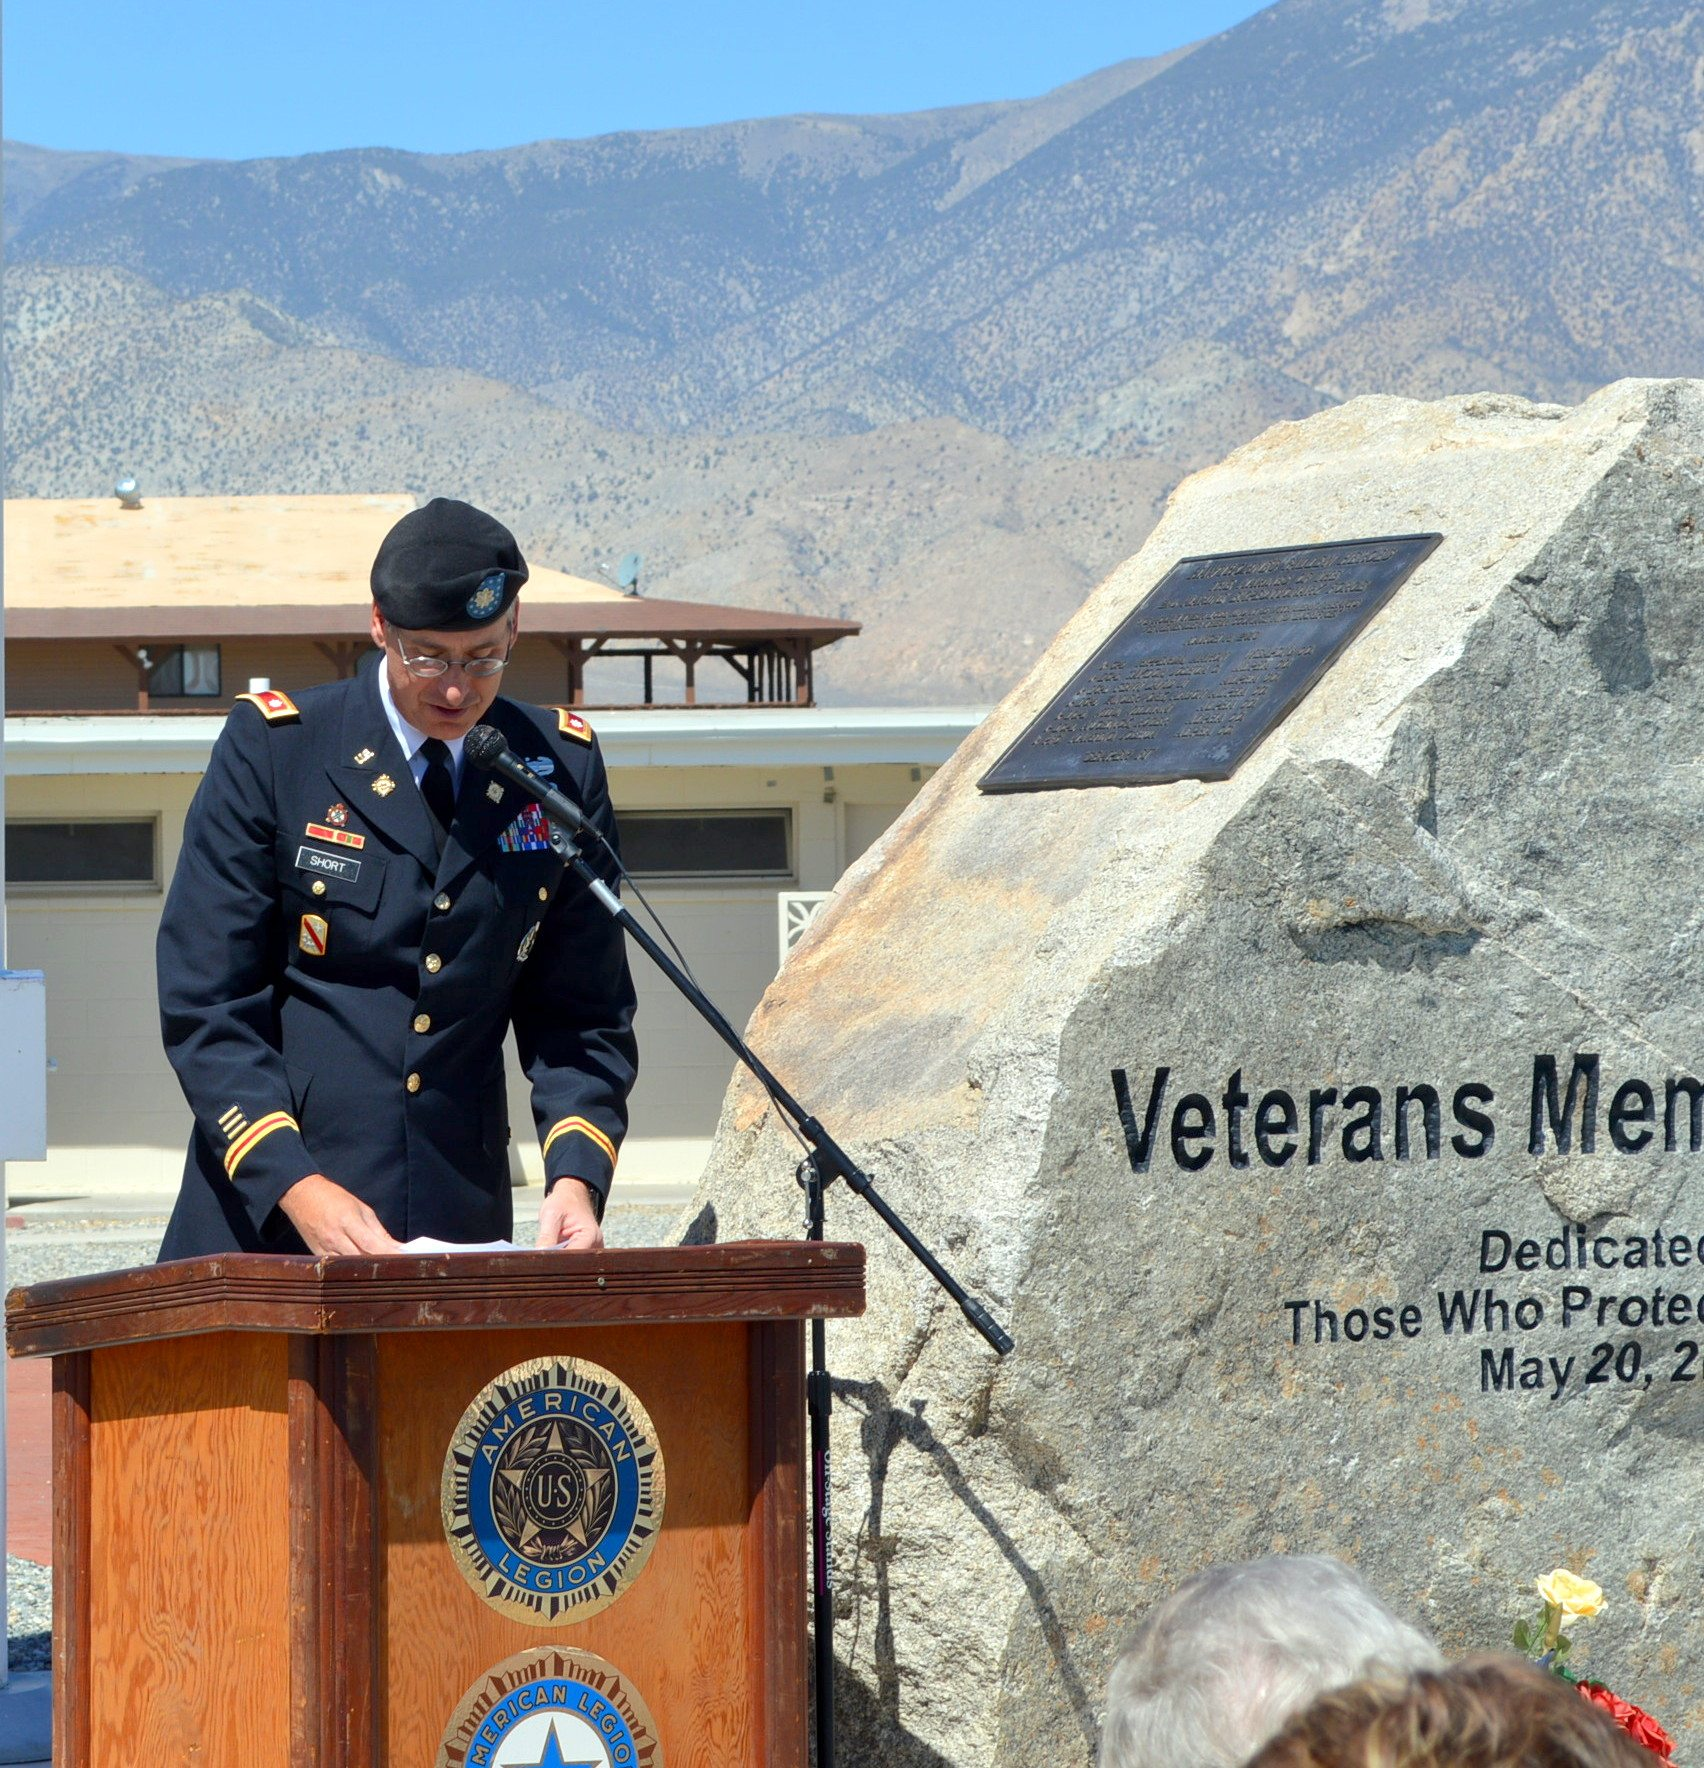 Memorial Day observed in Mineral County